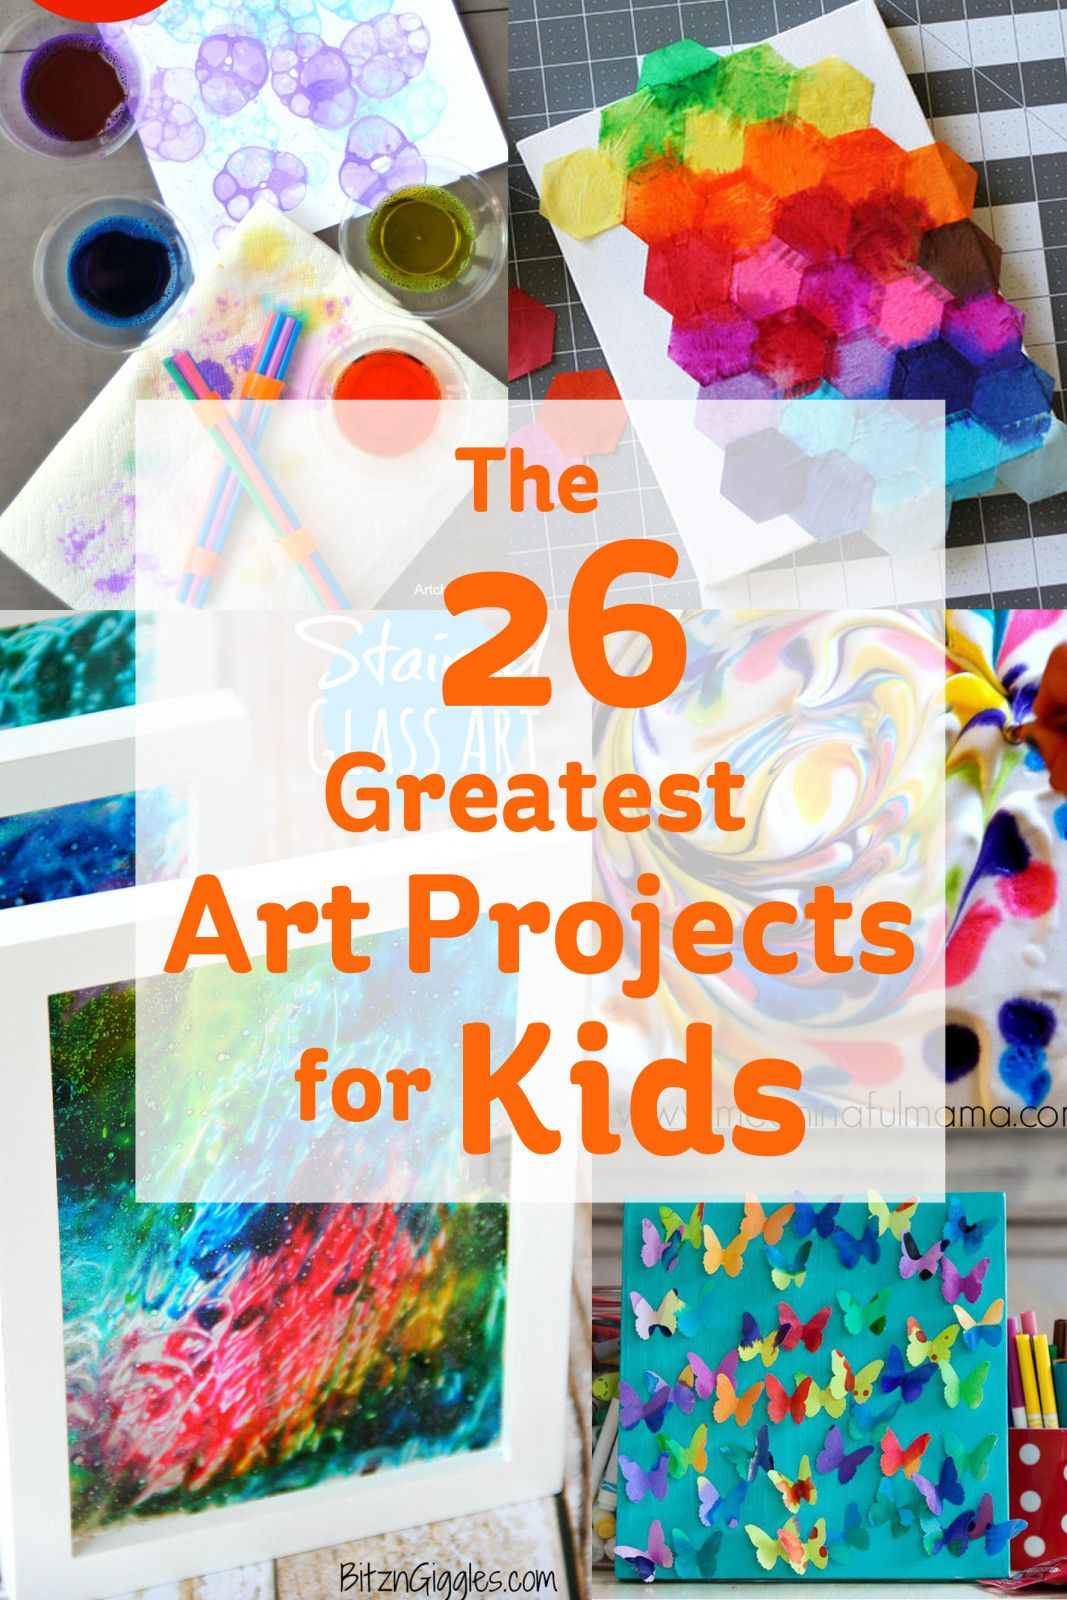 The 26 Greatest Art Projects for Kids Projects for kids